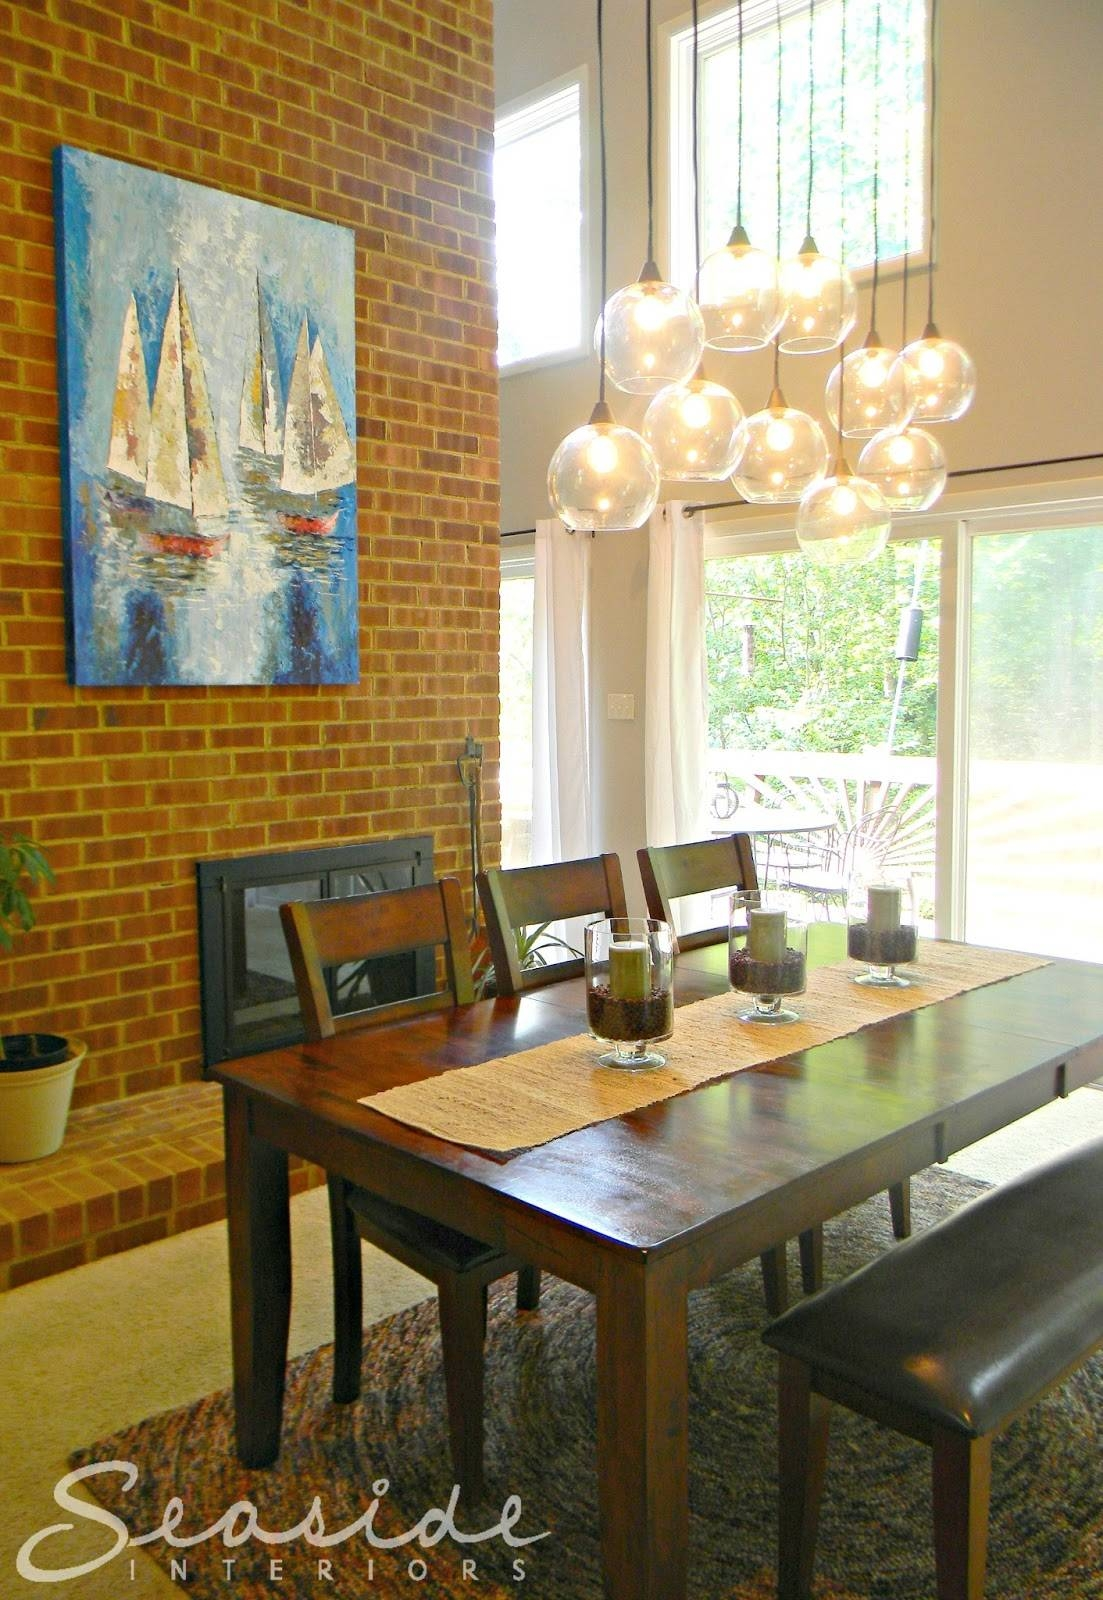 Seaside Interiors: Dining Room Design Makeover Using The Cb2 intended for Cb2 Lighting Pendants (Image 13 of 15)